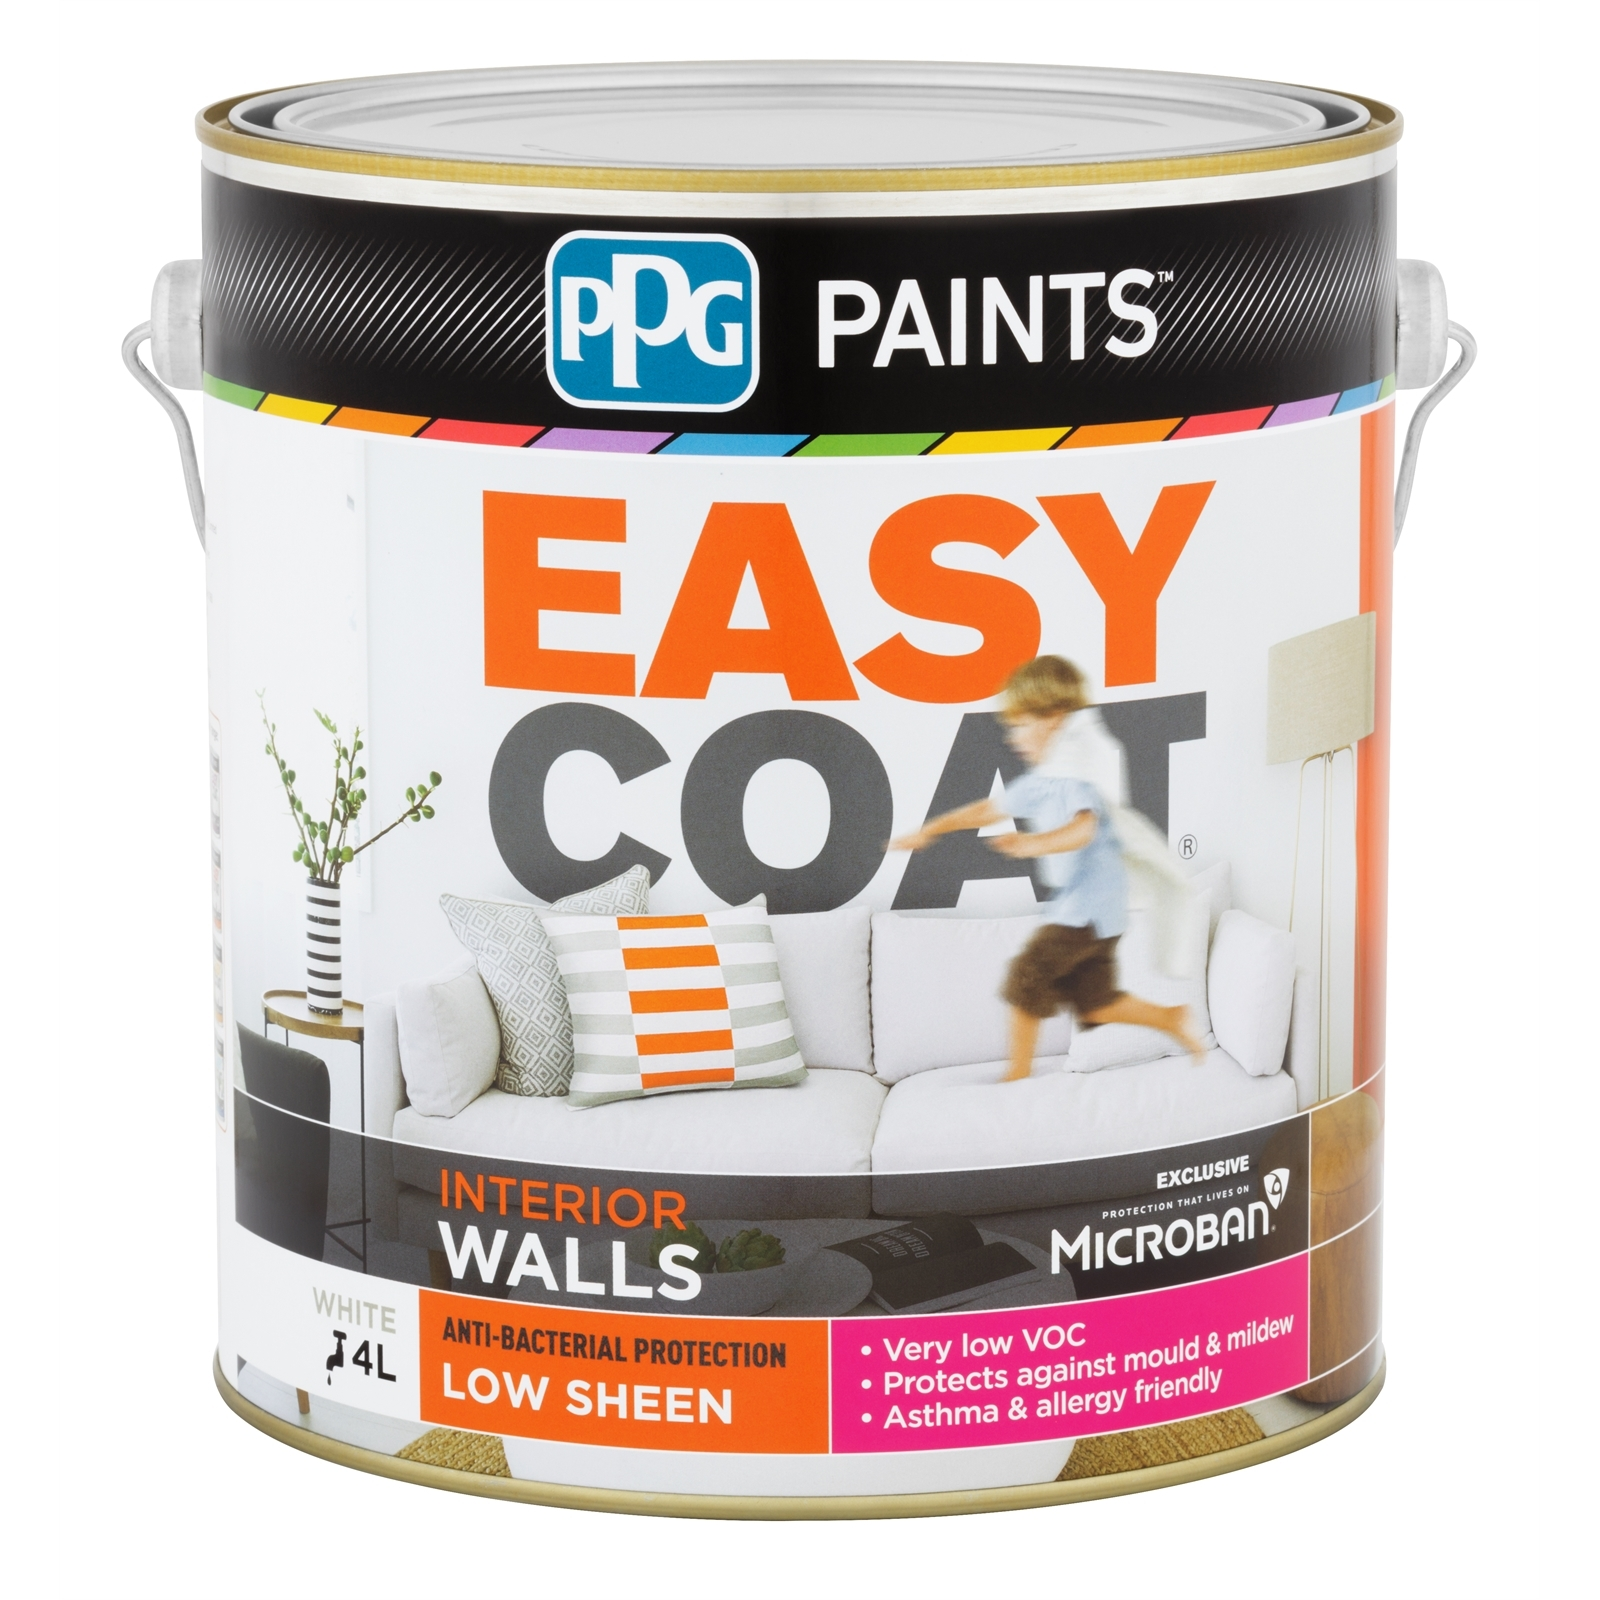 PPG Paints 4L White Low Sheen Easycoat Interior Wall Paint